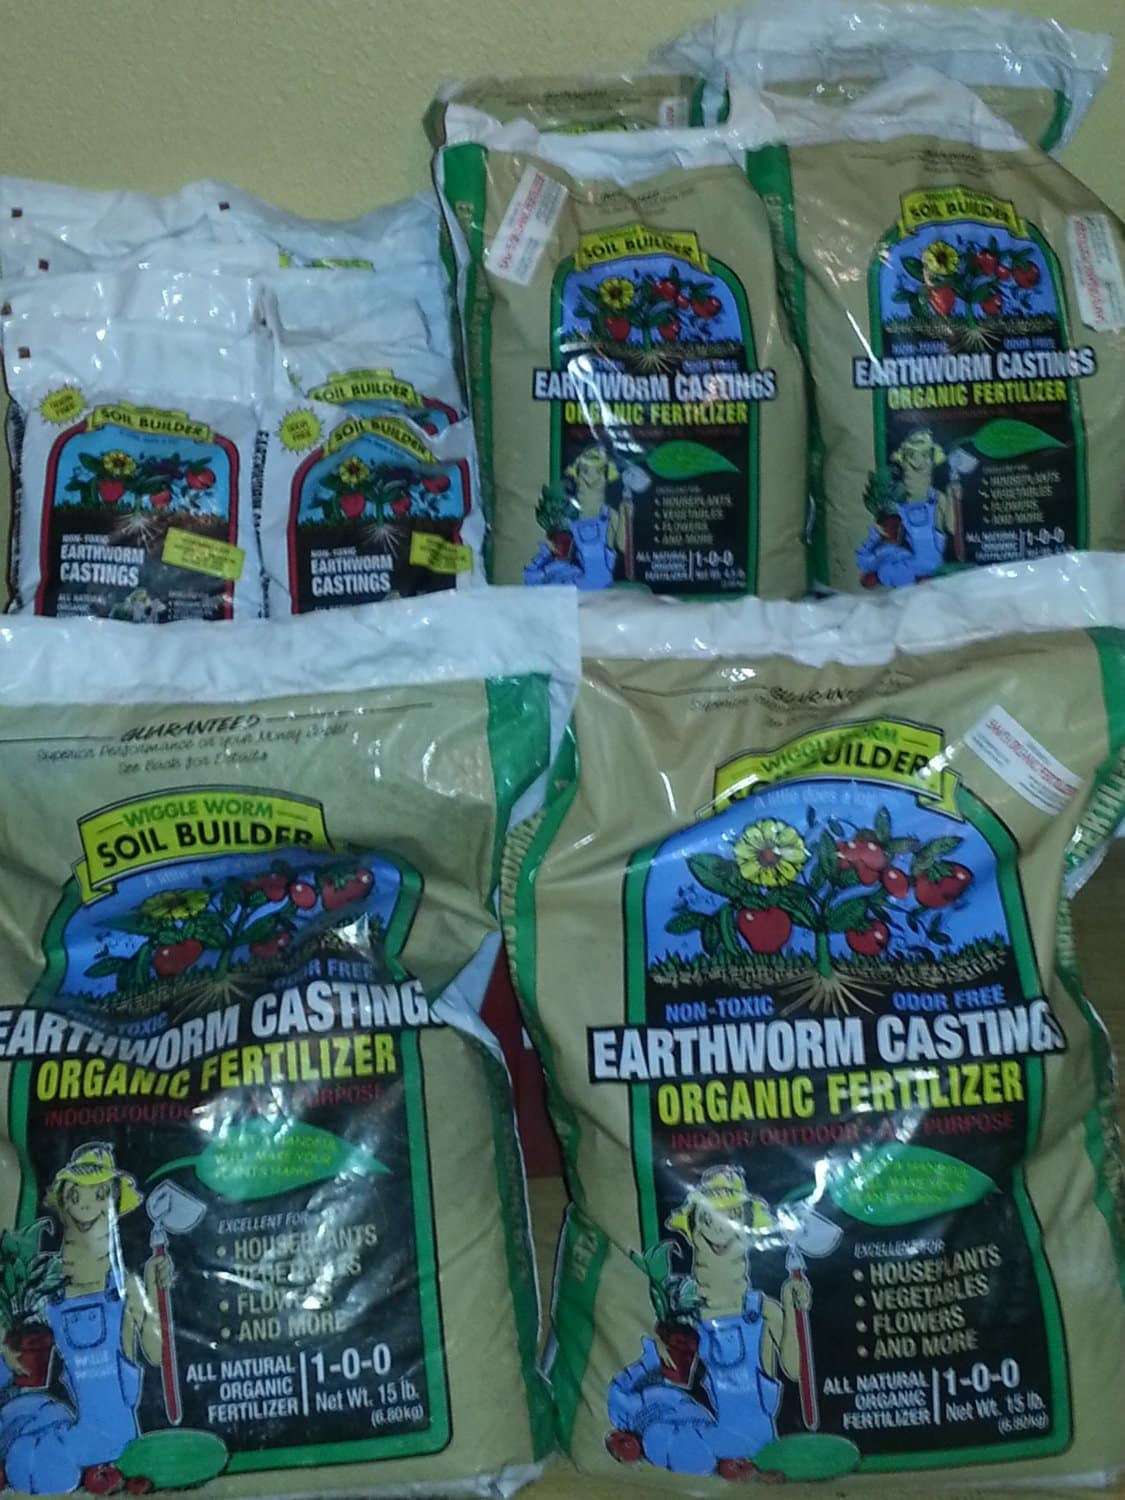 Earthworm Castings for Your Houseplants, Vegetables, and Flowers